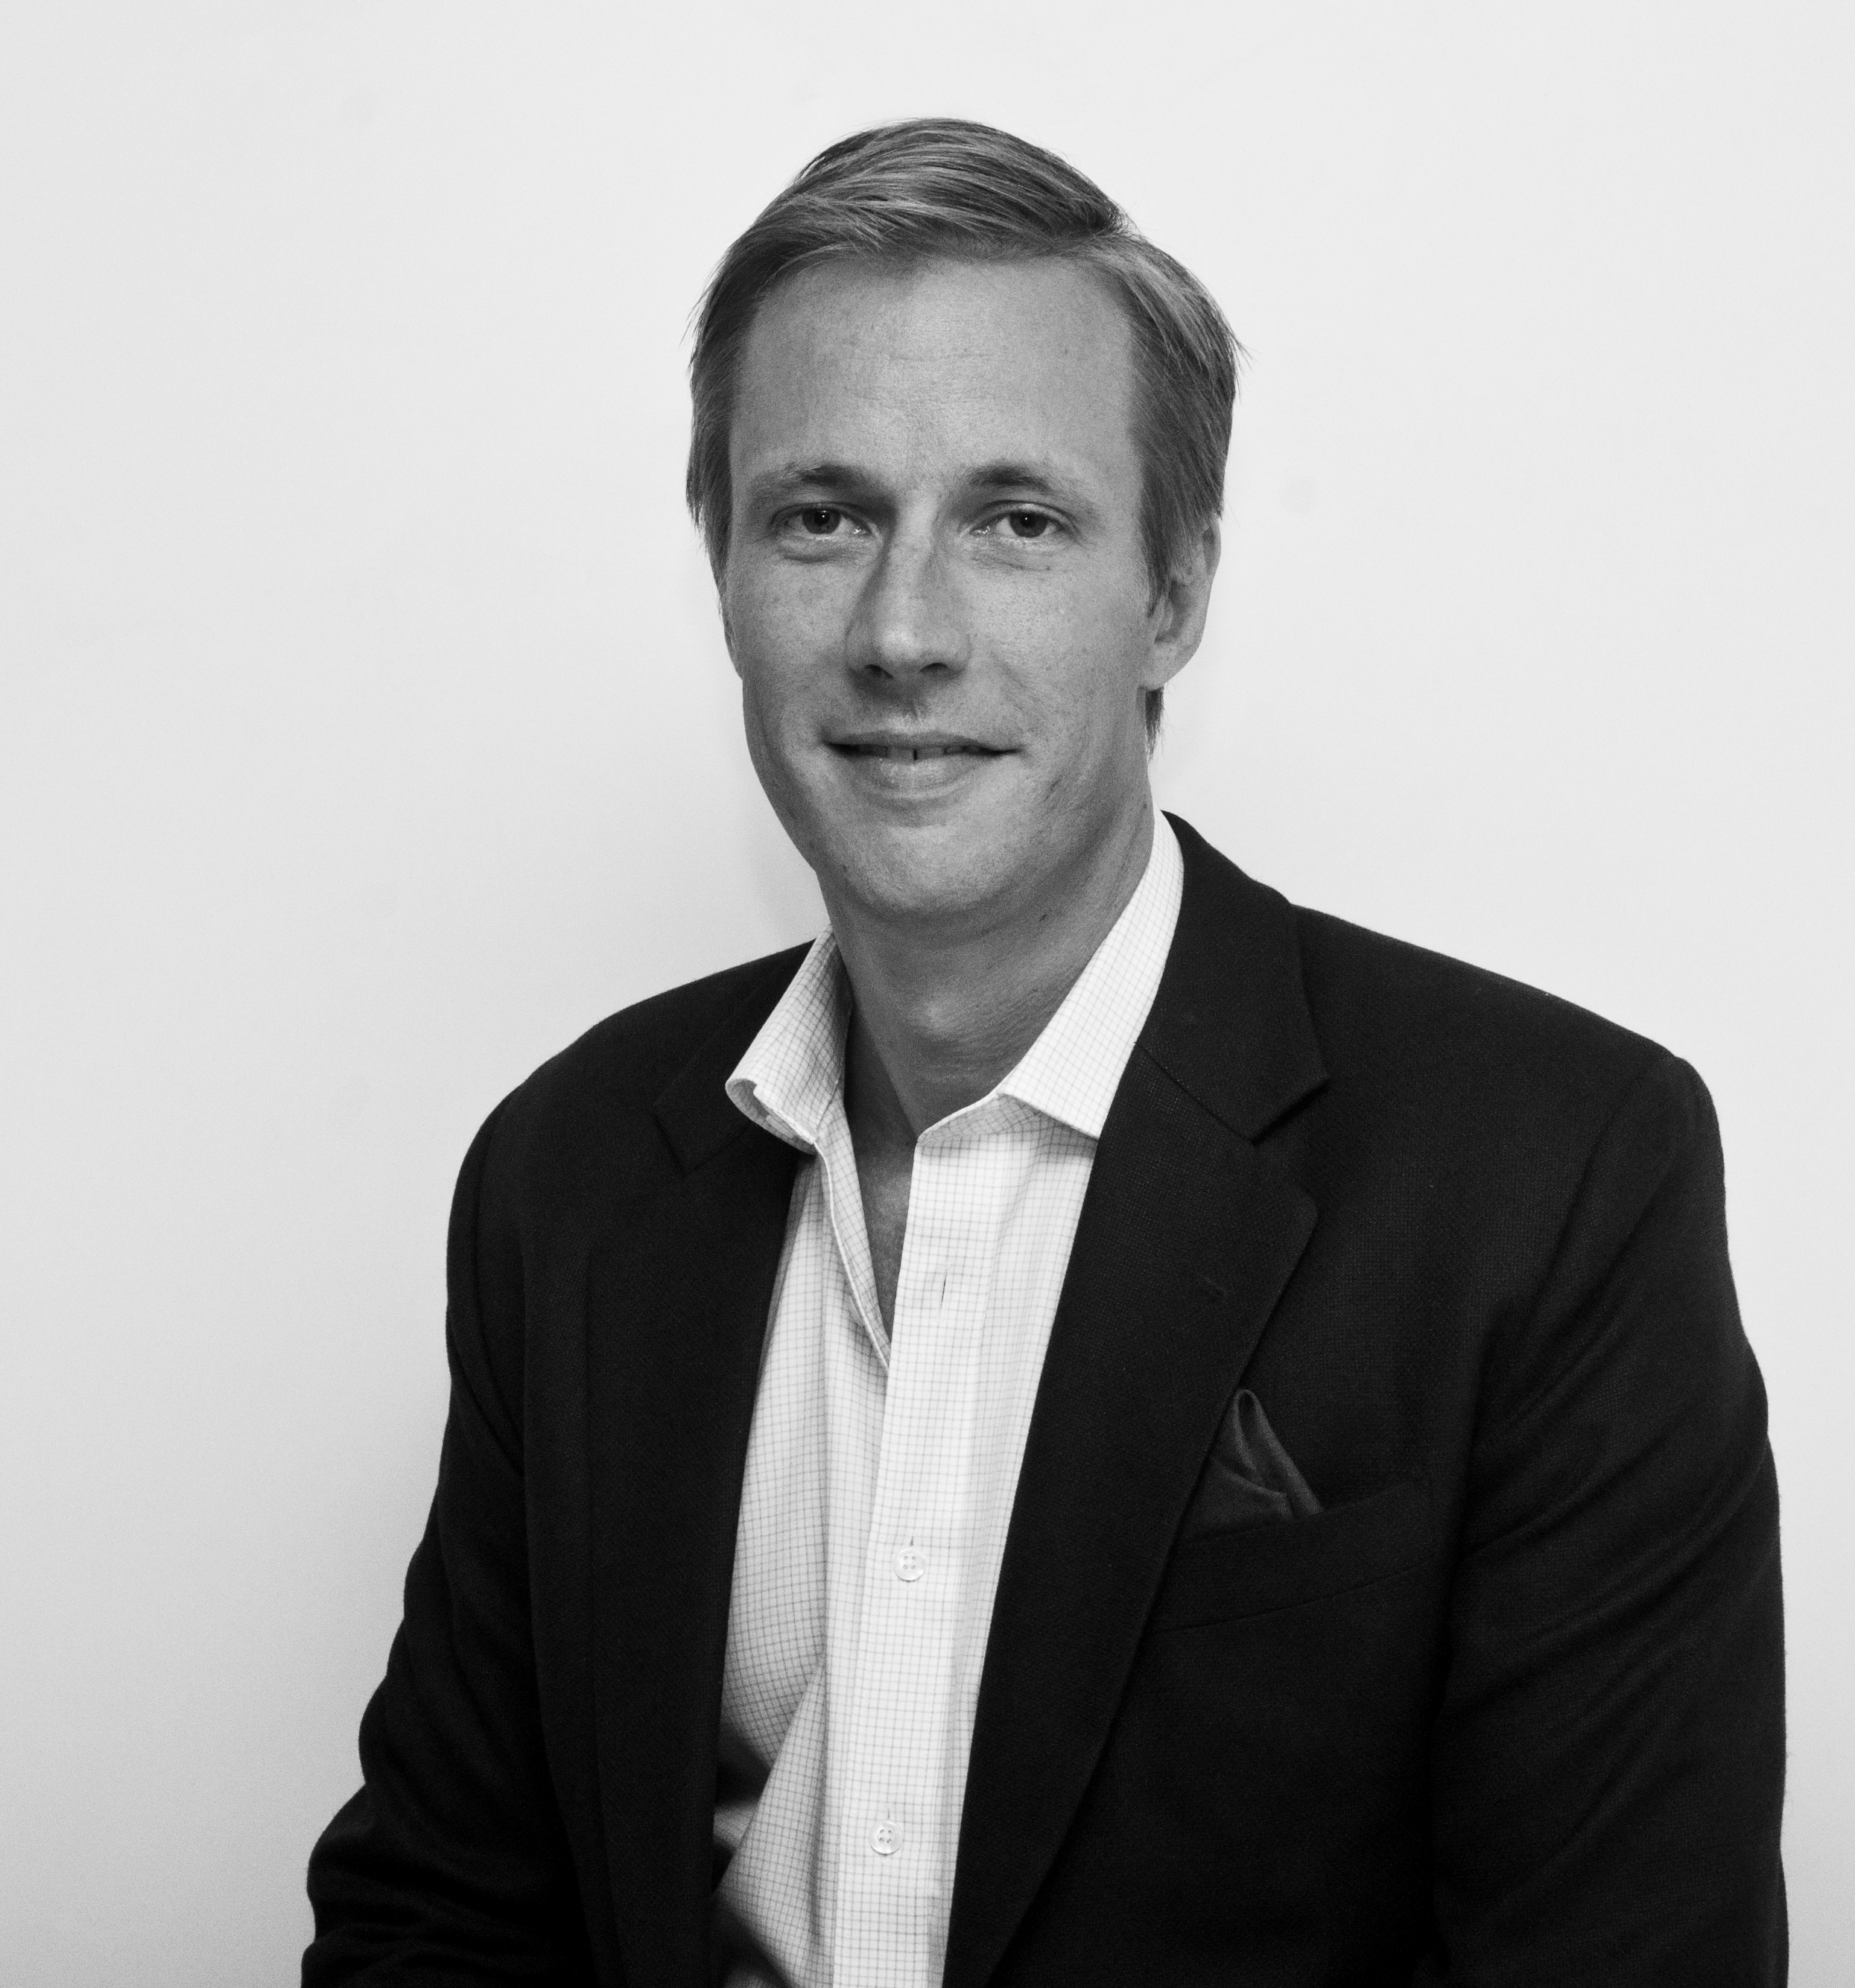 Liam Wholey CEO and Founder of The Travel Attache